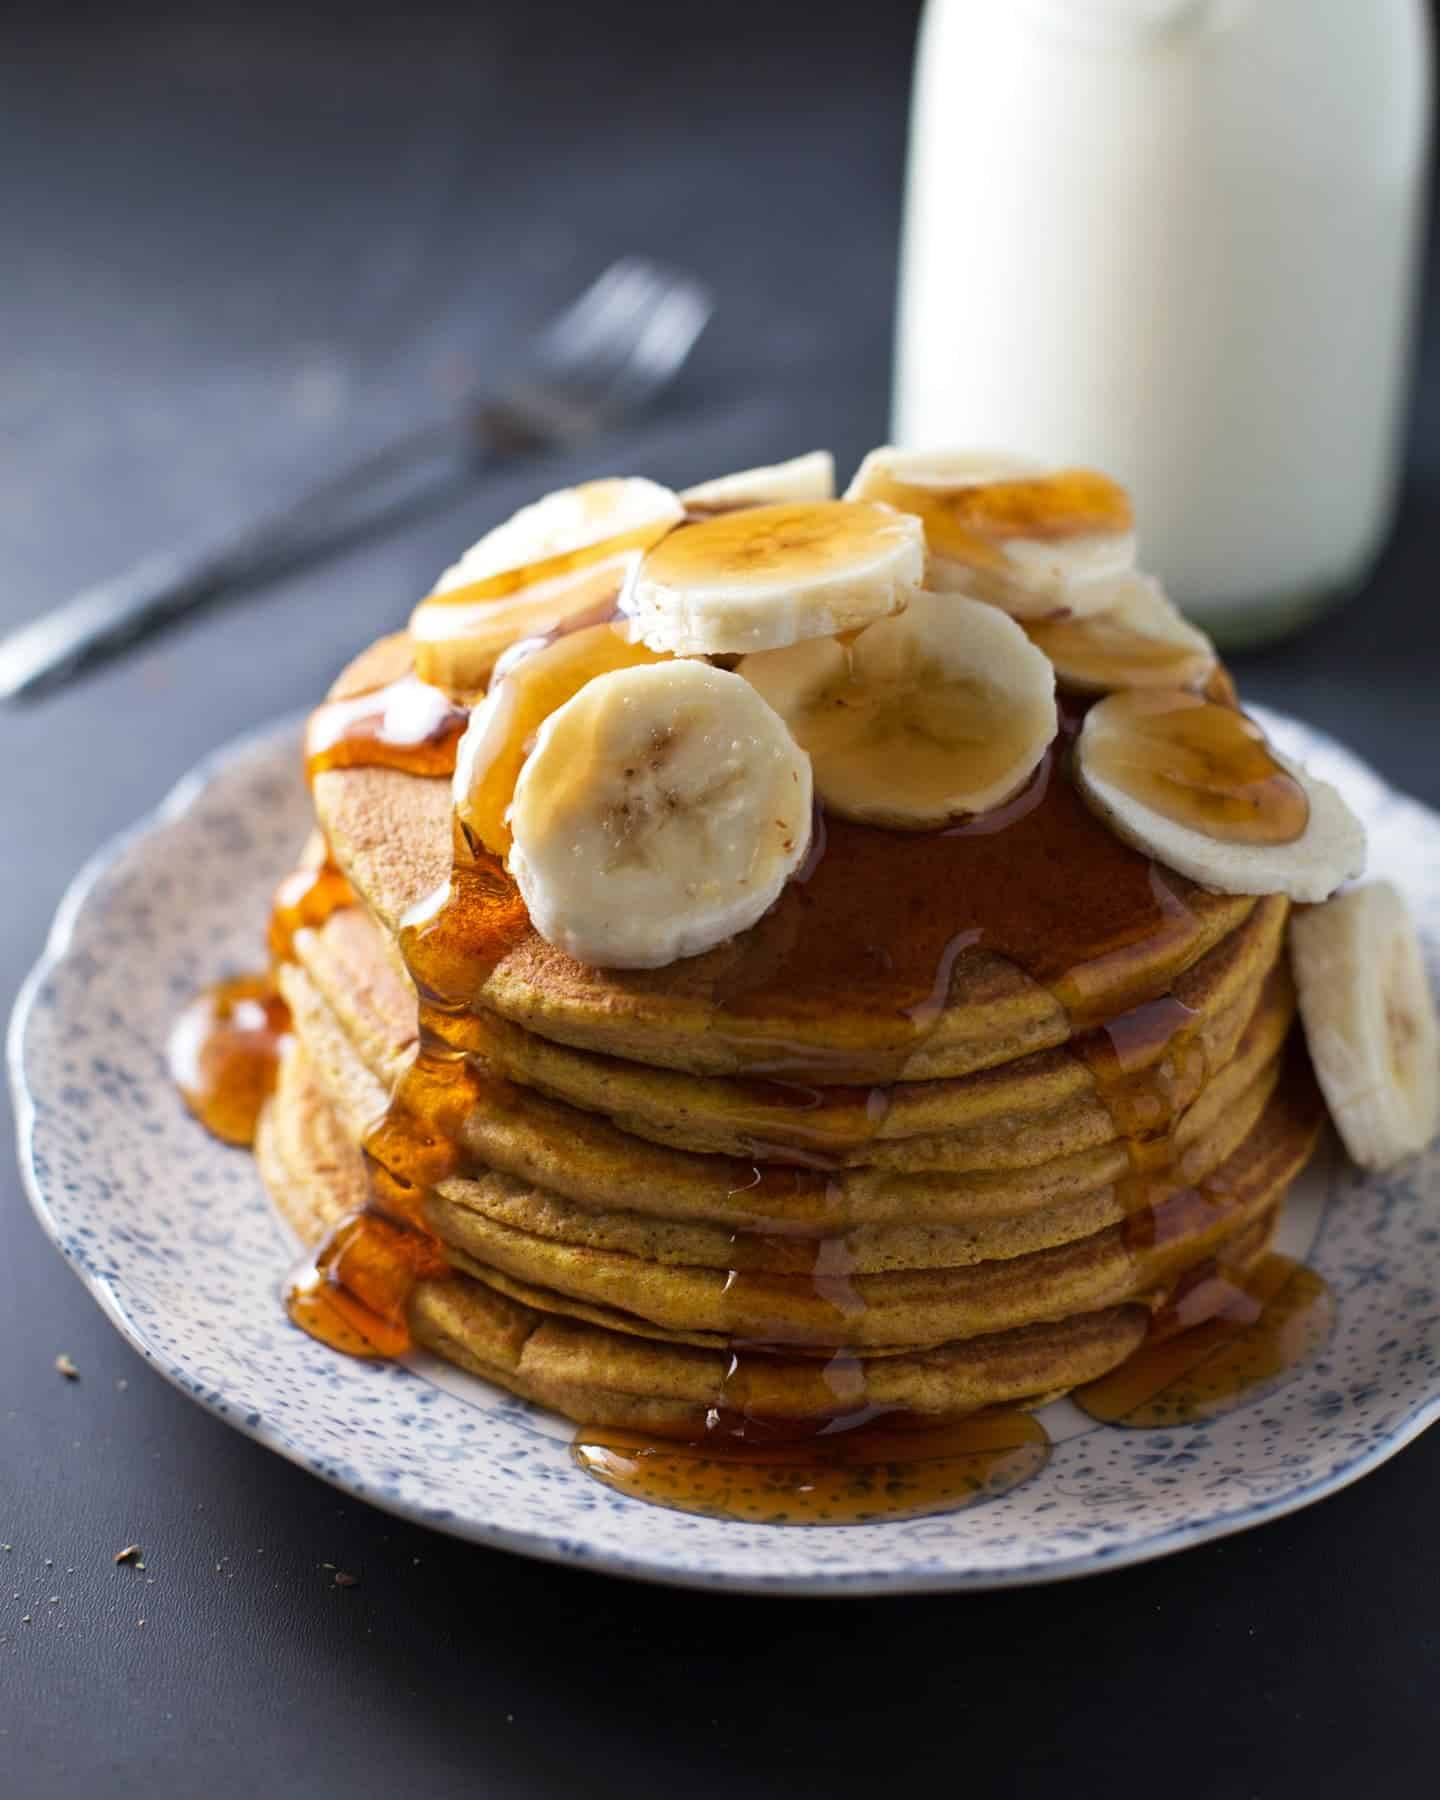 Indulging Peanut Butter Pancakes Bananas Ever Whole Wheat Pumpkin Pancakes Recipe Pinch Eggs Calories Pancakes Yum Calories Whole Wheat Pumpkin Pancakes Stacked On A Plate nice food Calories In Pancakes